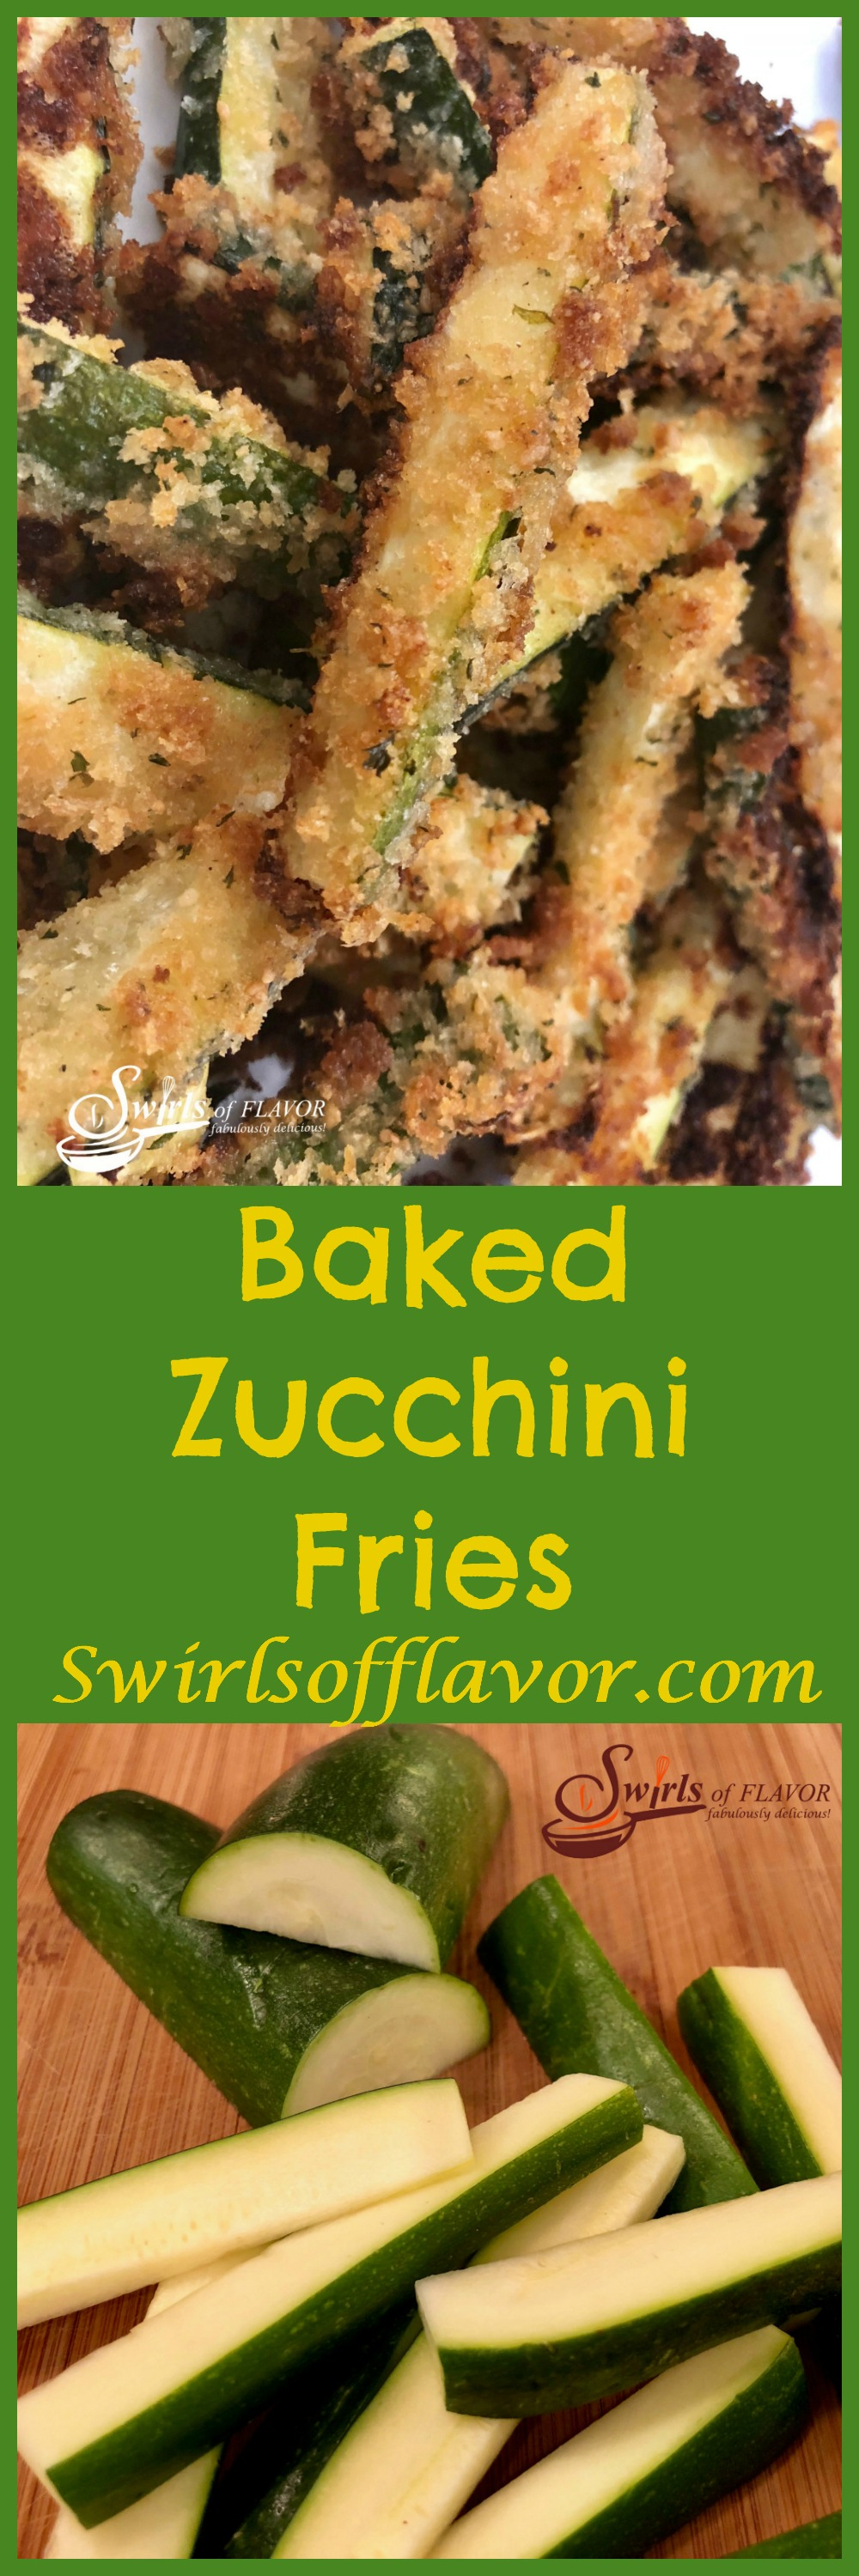 Baked Zucchini Fries, a healthy alternative to french fries, bake in the oven with a crispy parmesan panko coating that both kids and adults will love! Bet you can't eat just one! zucchini | fries | oven baked | healthy | snack | appetizer | side dish | vegetable | cheese | Parmesan | kid friendly | #swirlsofflavor